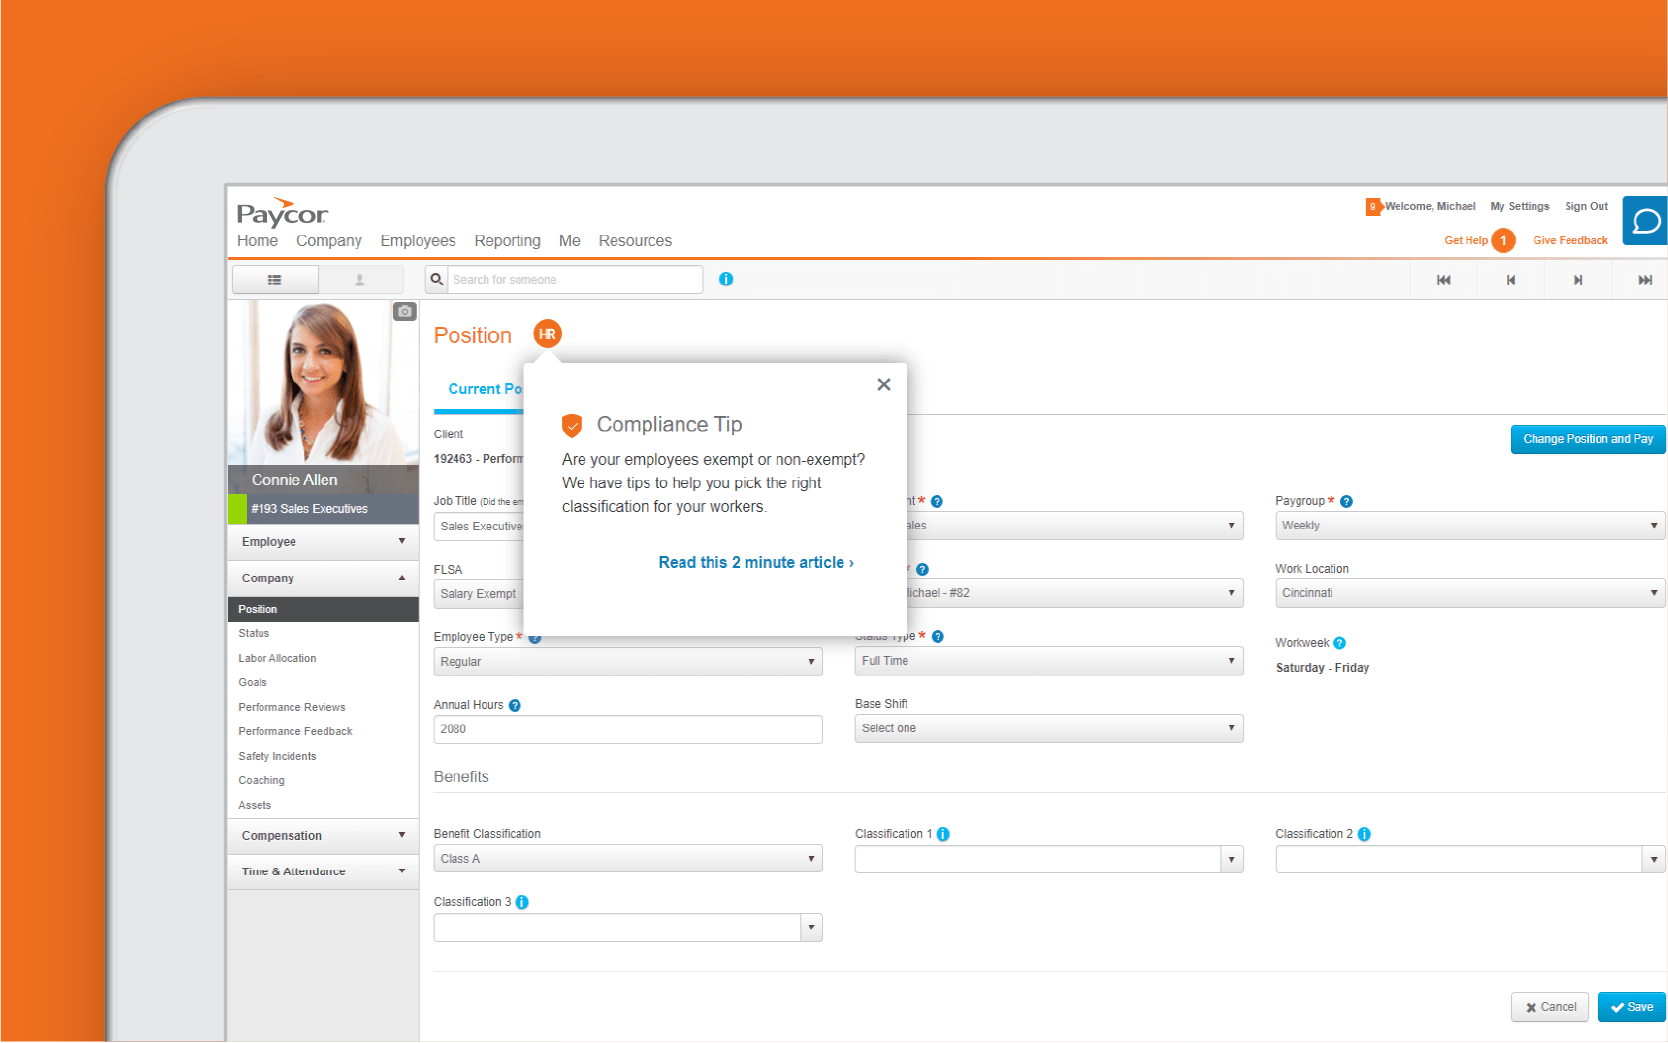 Corner of tablet showing employee experience dashboard against orange background